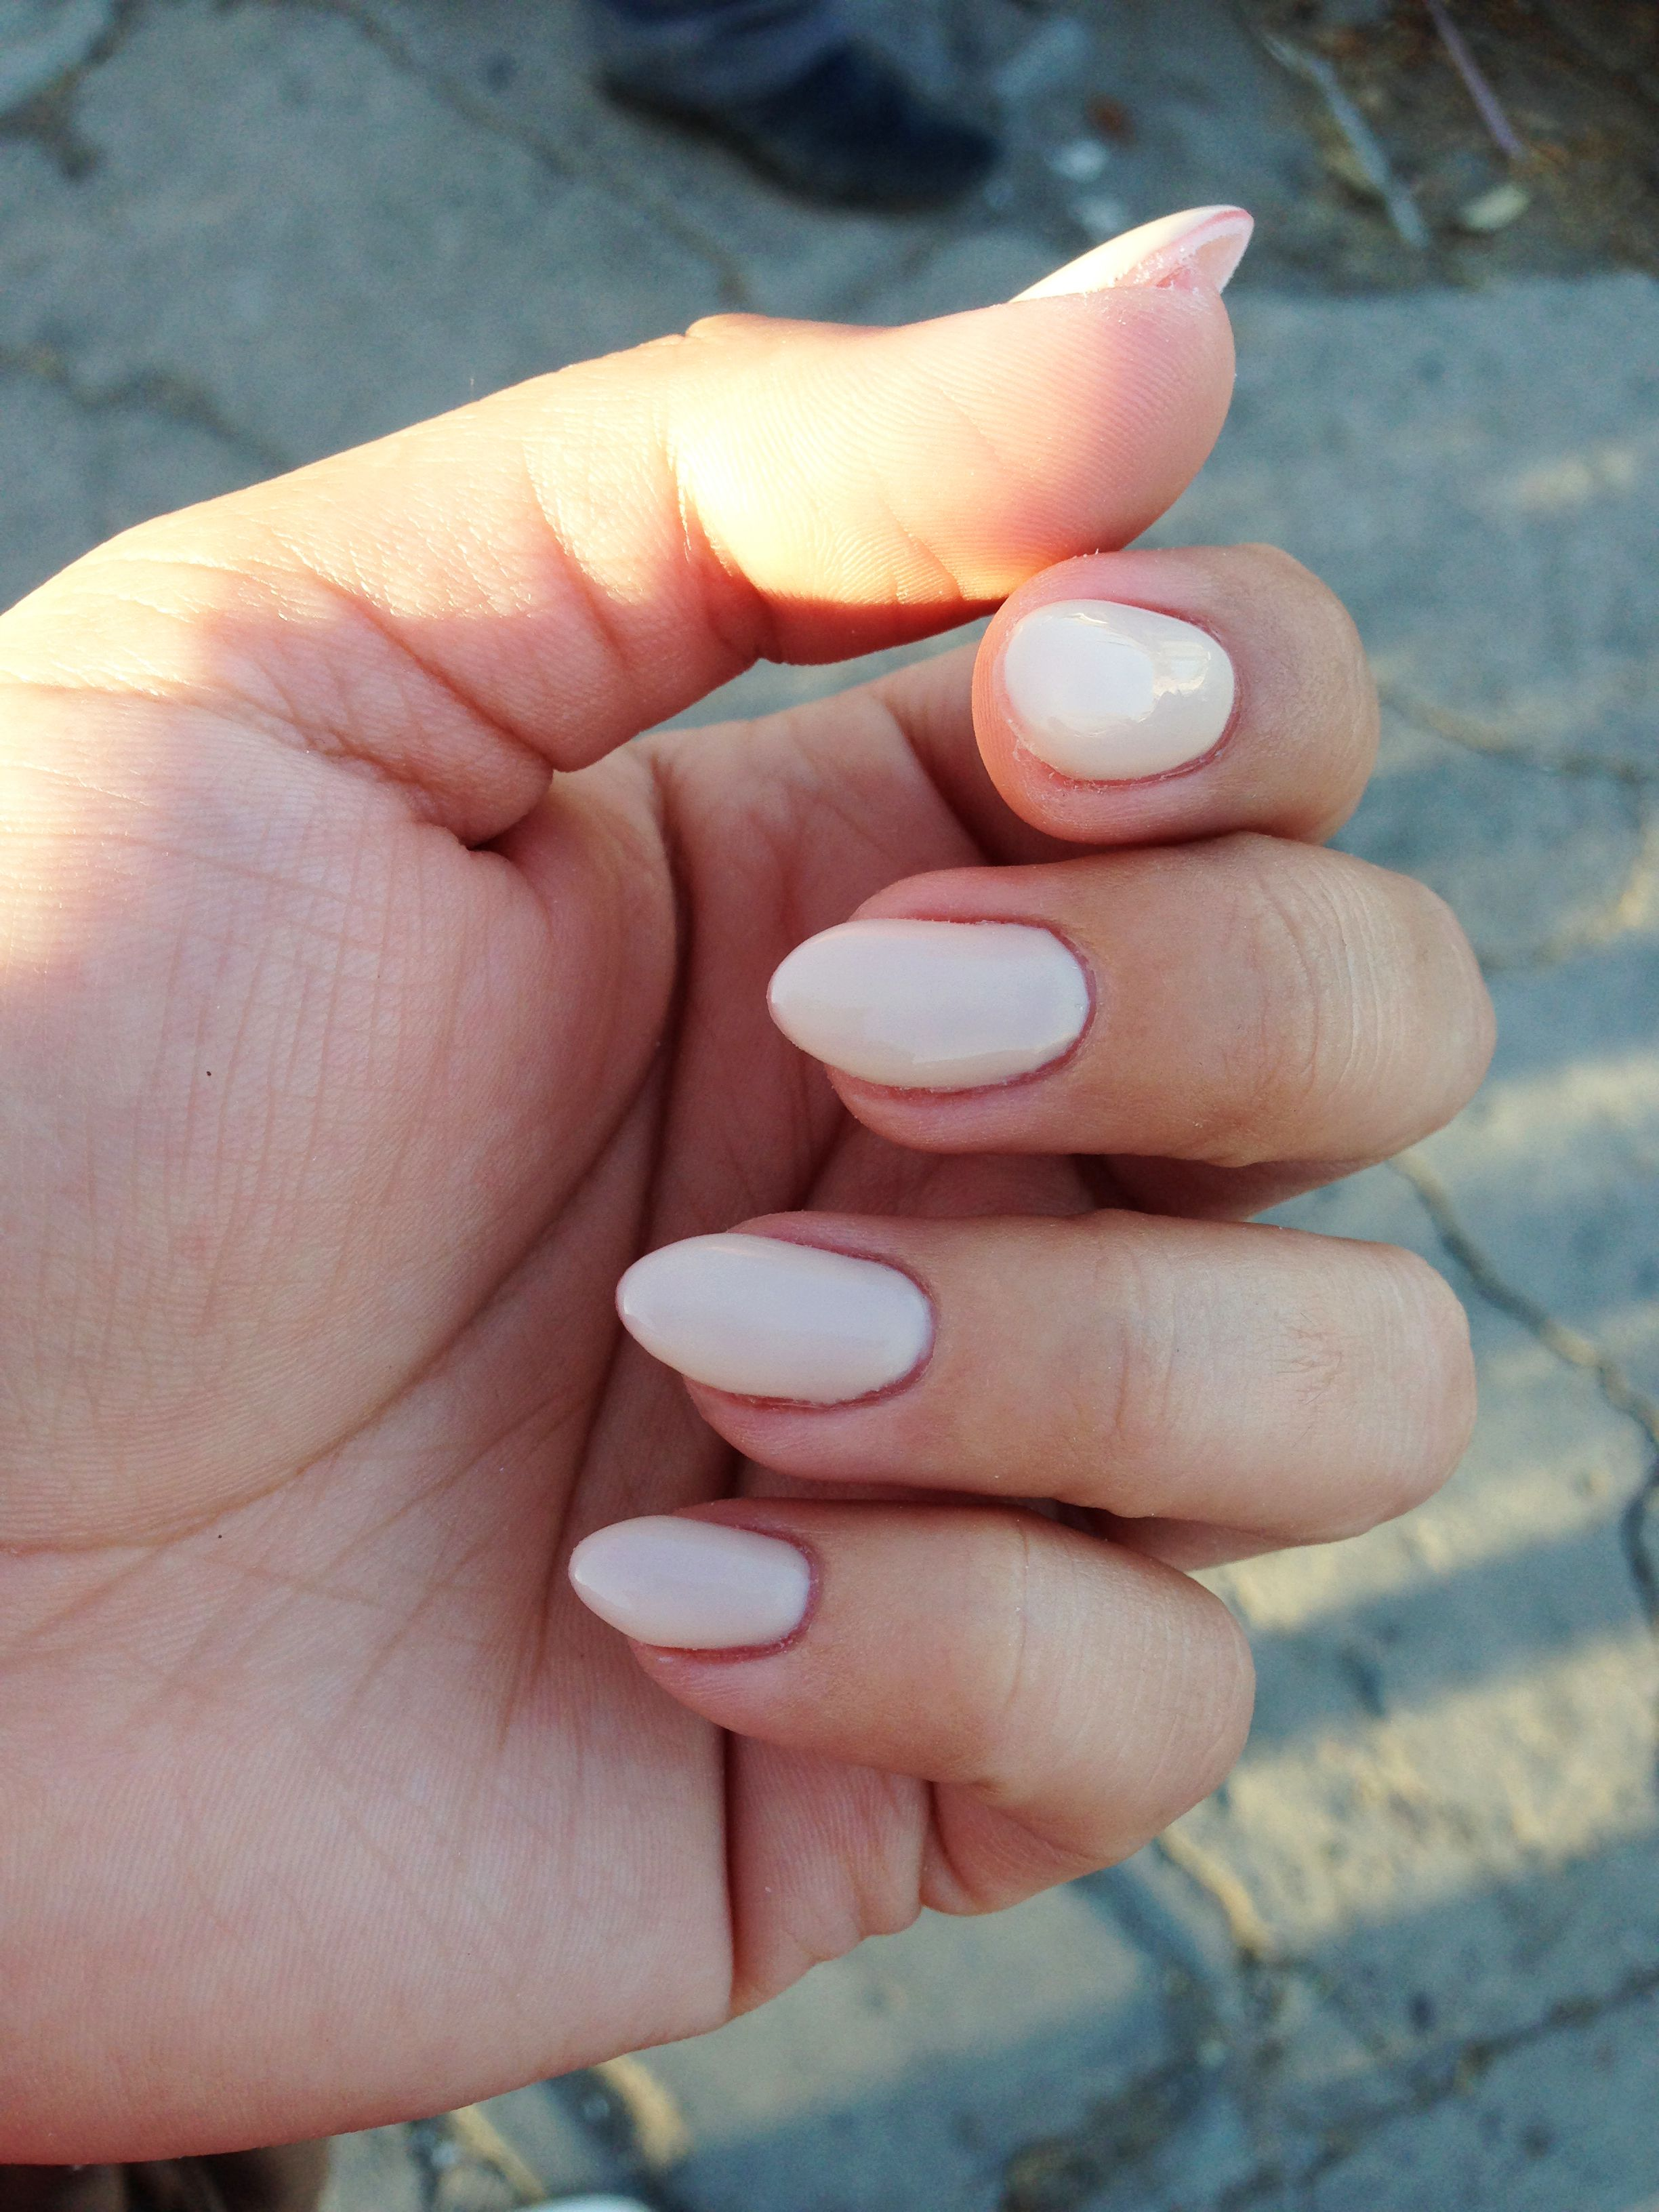 Just did my nails, love them! Nude short almond nails | Nails ...